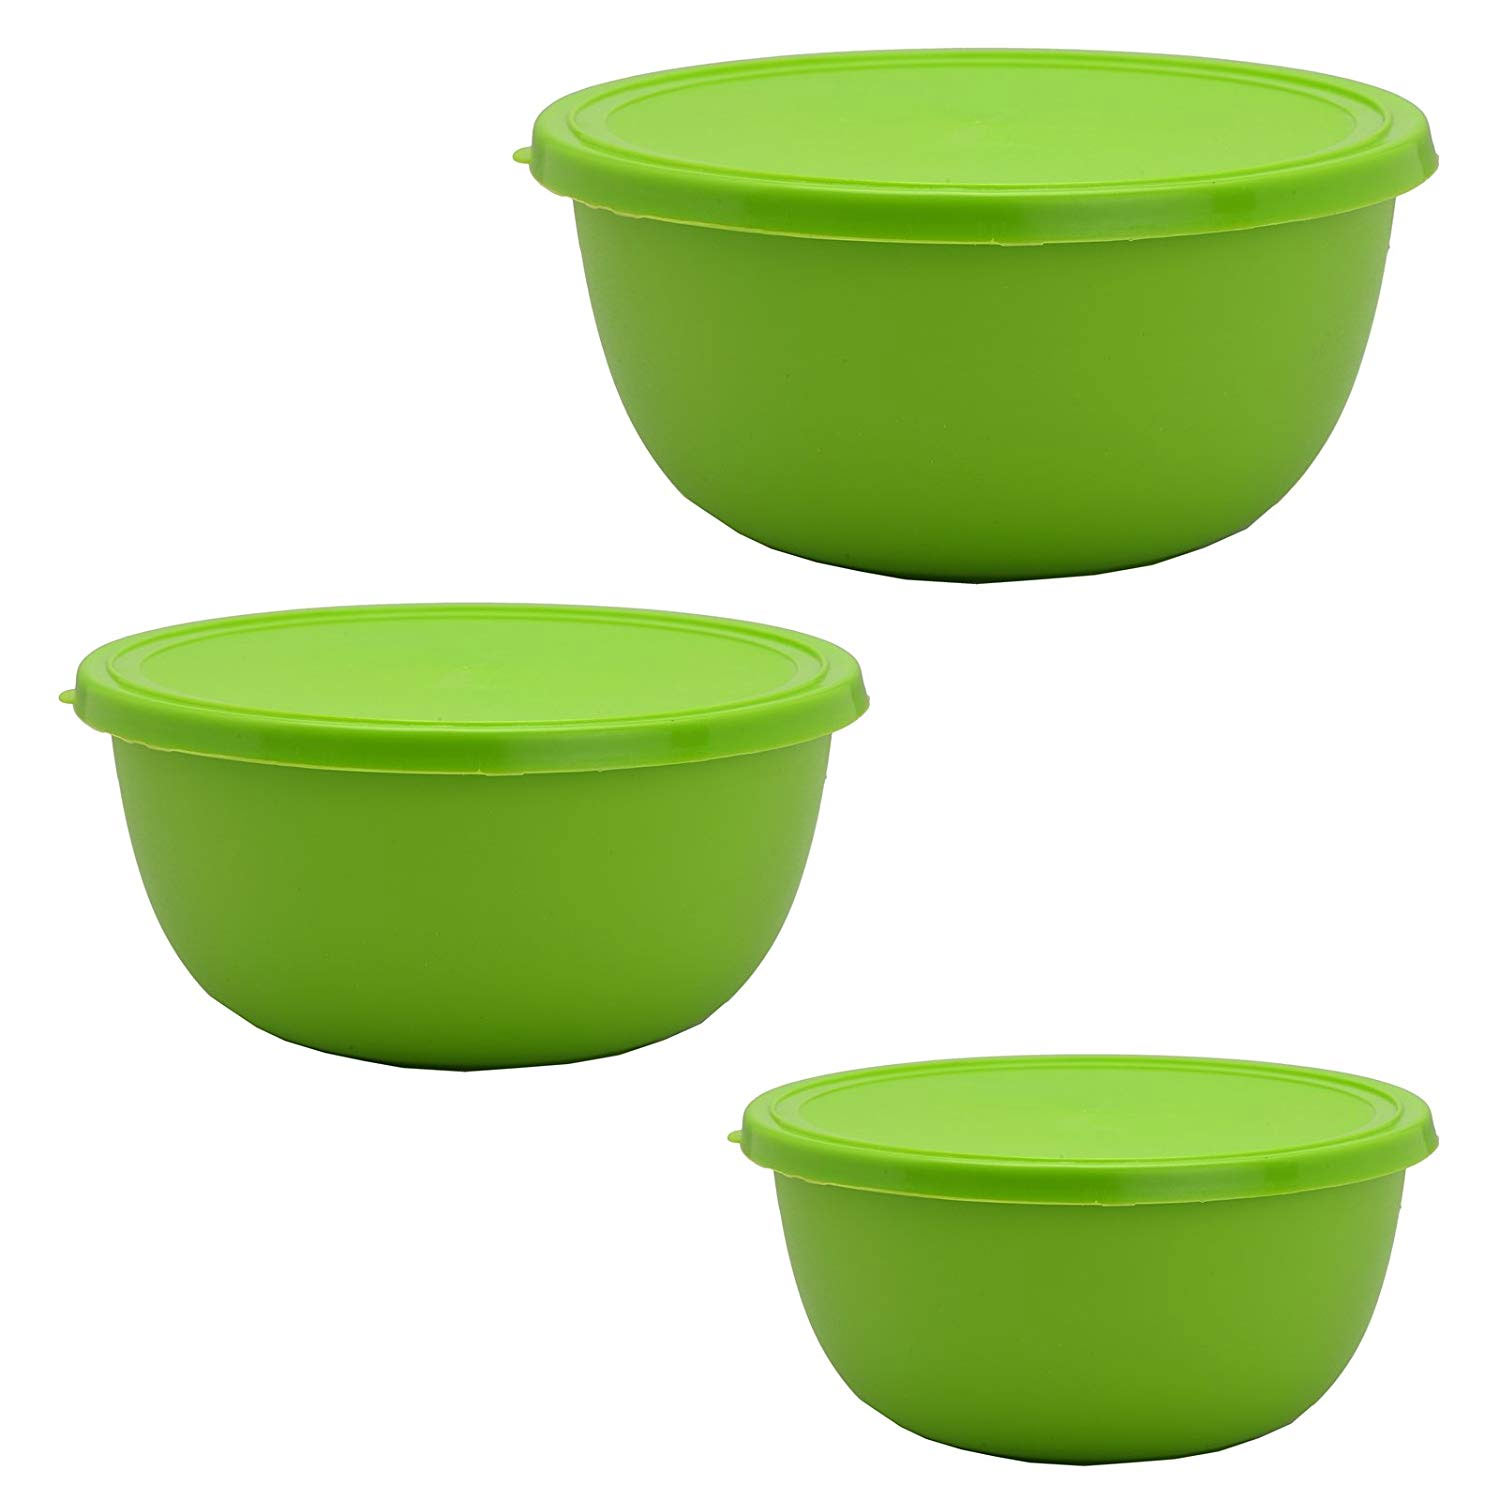 Microwave Safe Bowls Sanjeev Kapoor Microwave Safe Stainless Steel Green Plastic Coated Bowls Set Of 3 Pieces Get India Store